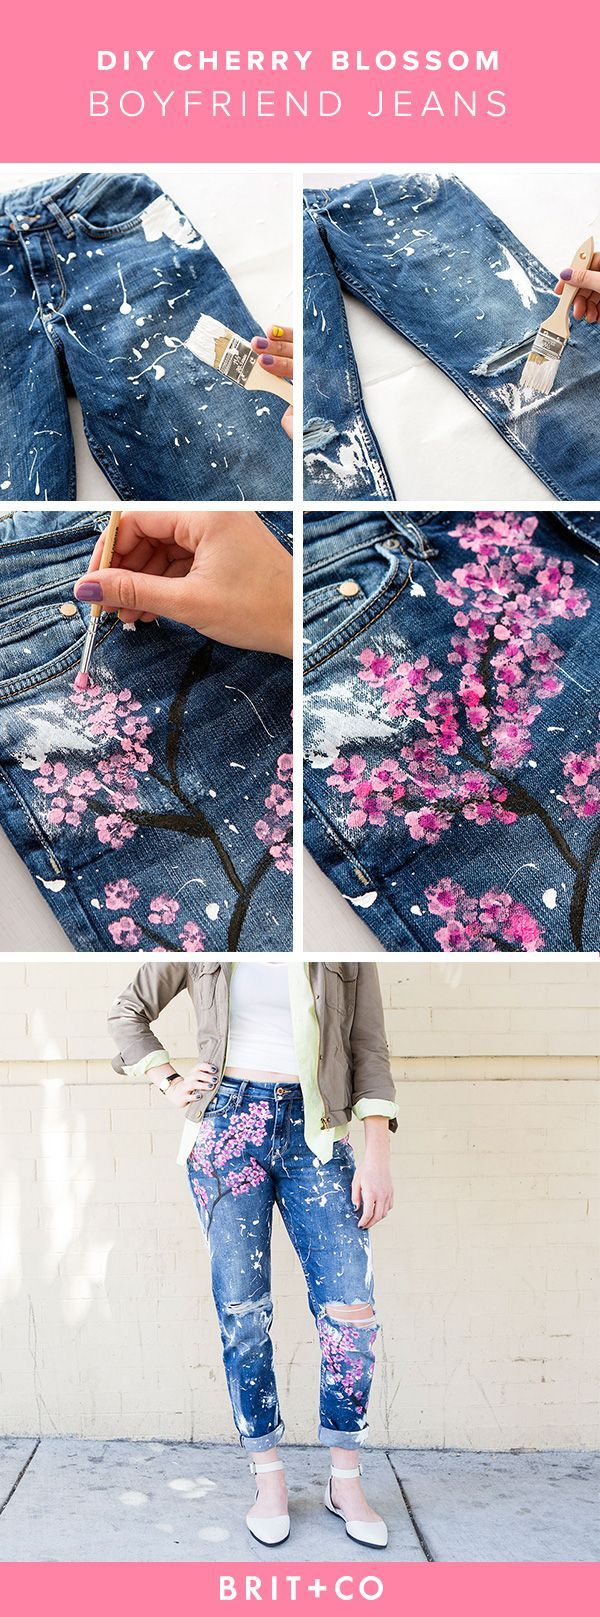 How to DIY Blake Lively's $500 Cherry Blossom Boyfriend Jeans